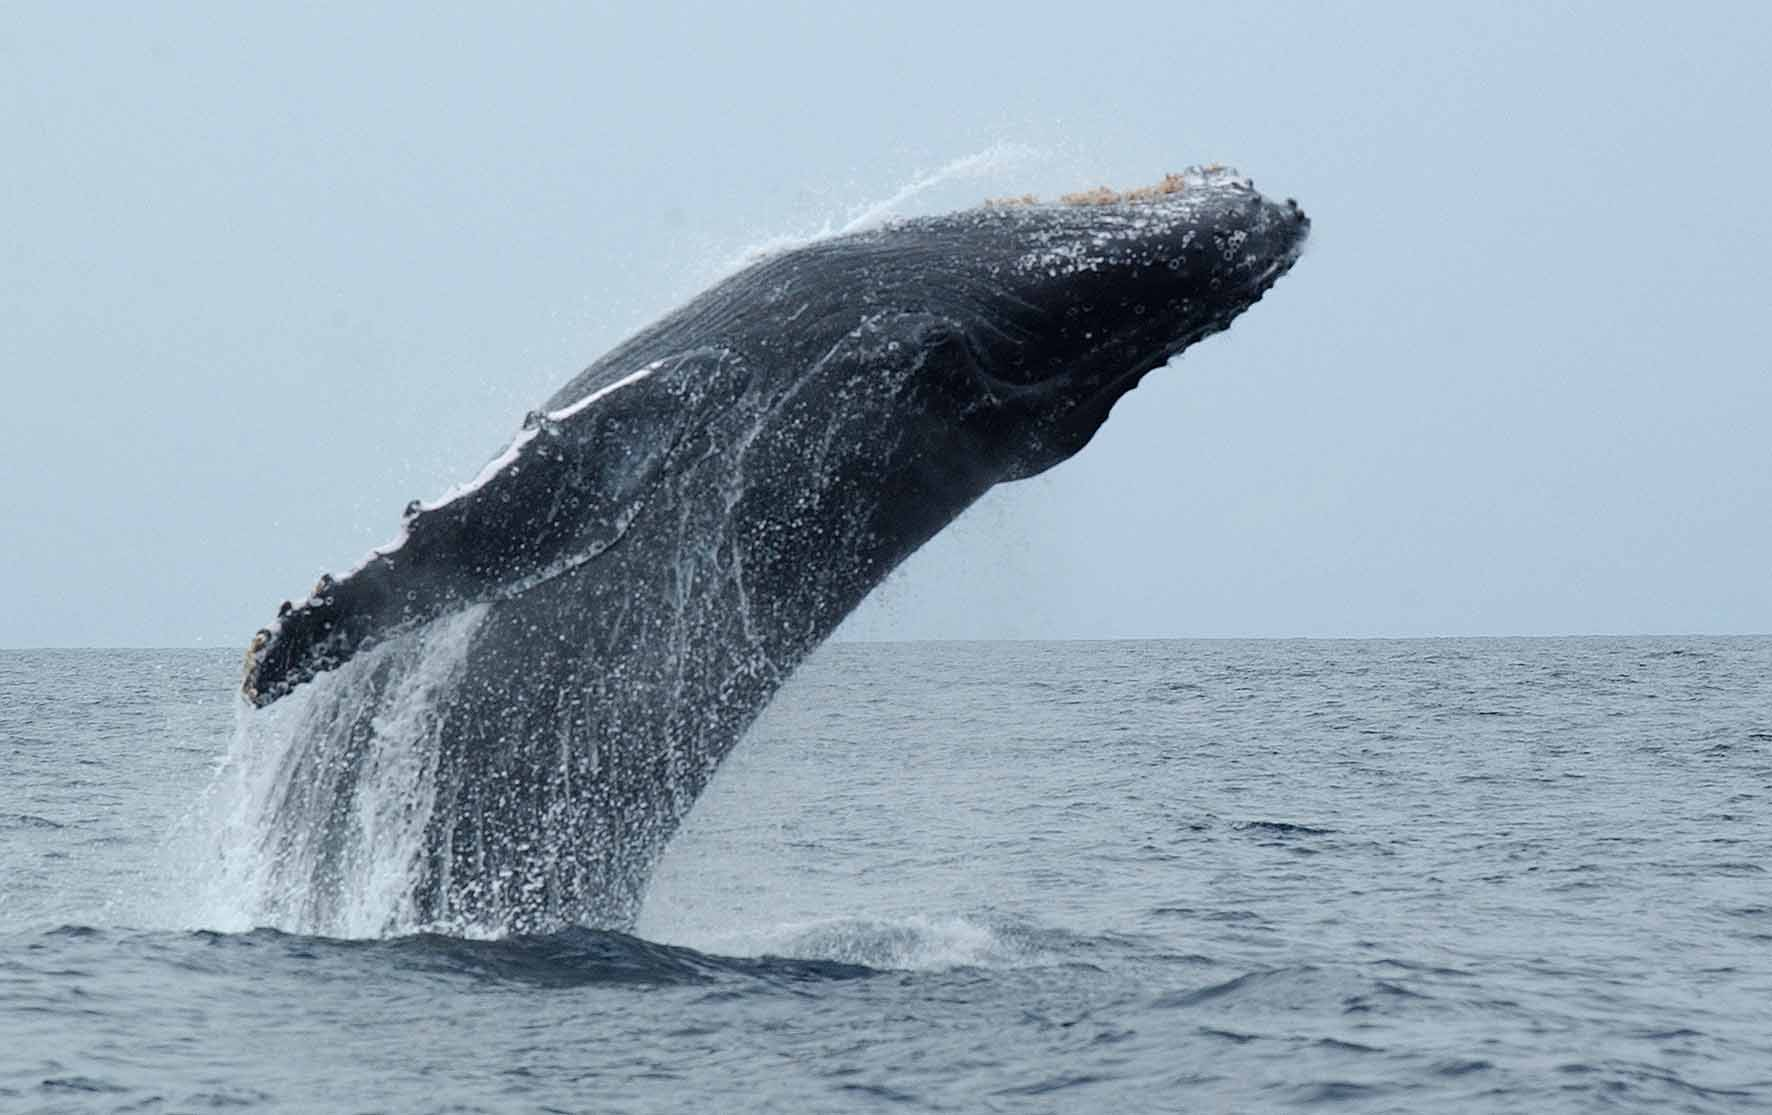 Humpback Whale Survey. Photo by Ken Findlay